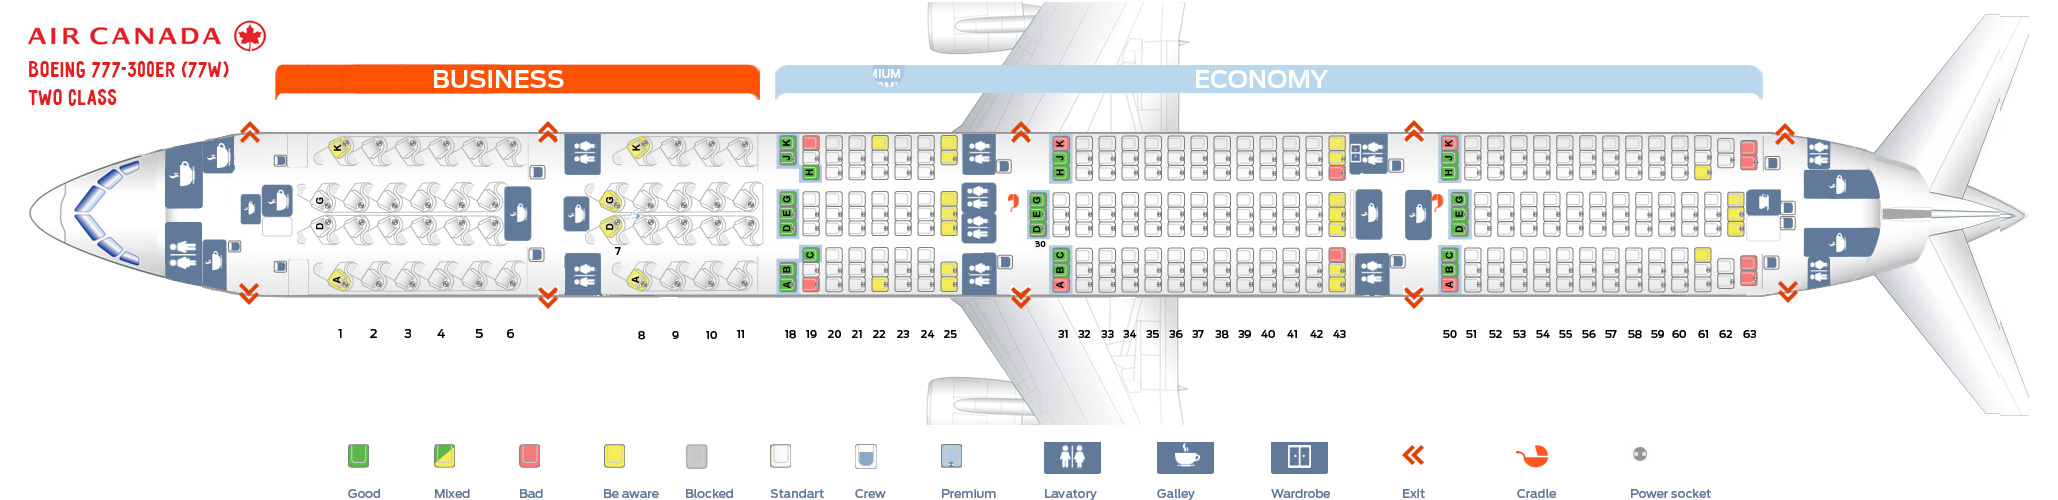 Air Canada Ac 15 Seat Map Seat map Boeing 777 300 Air Canada. Best seats in plane